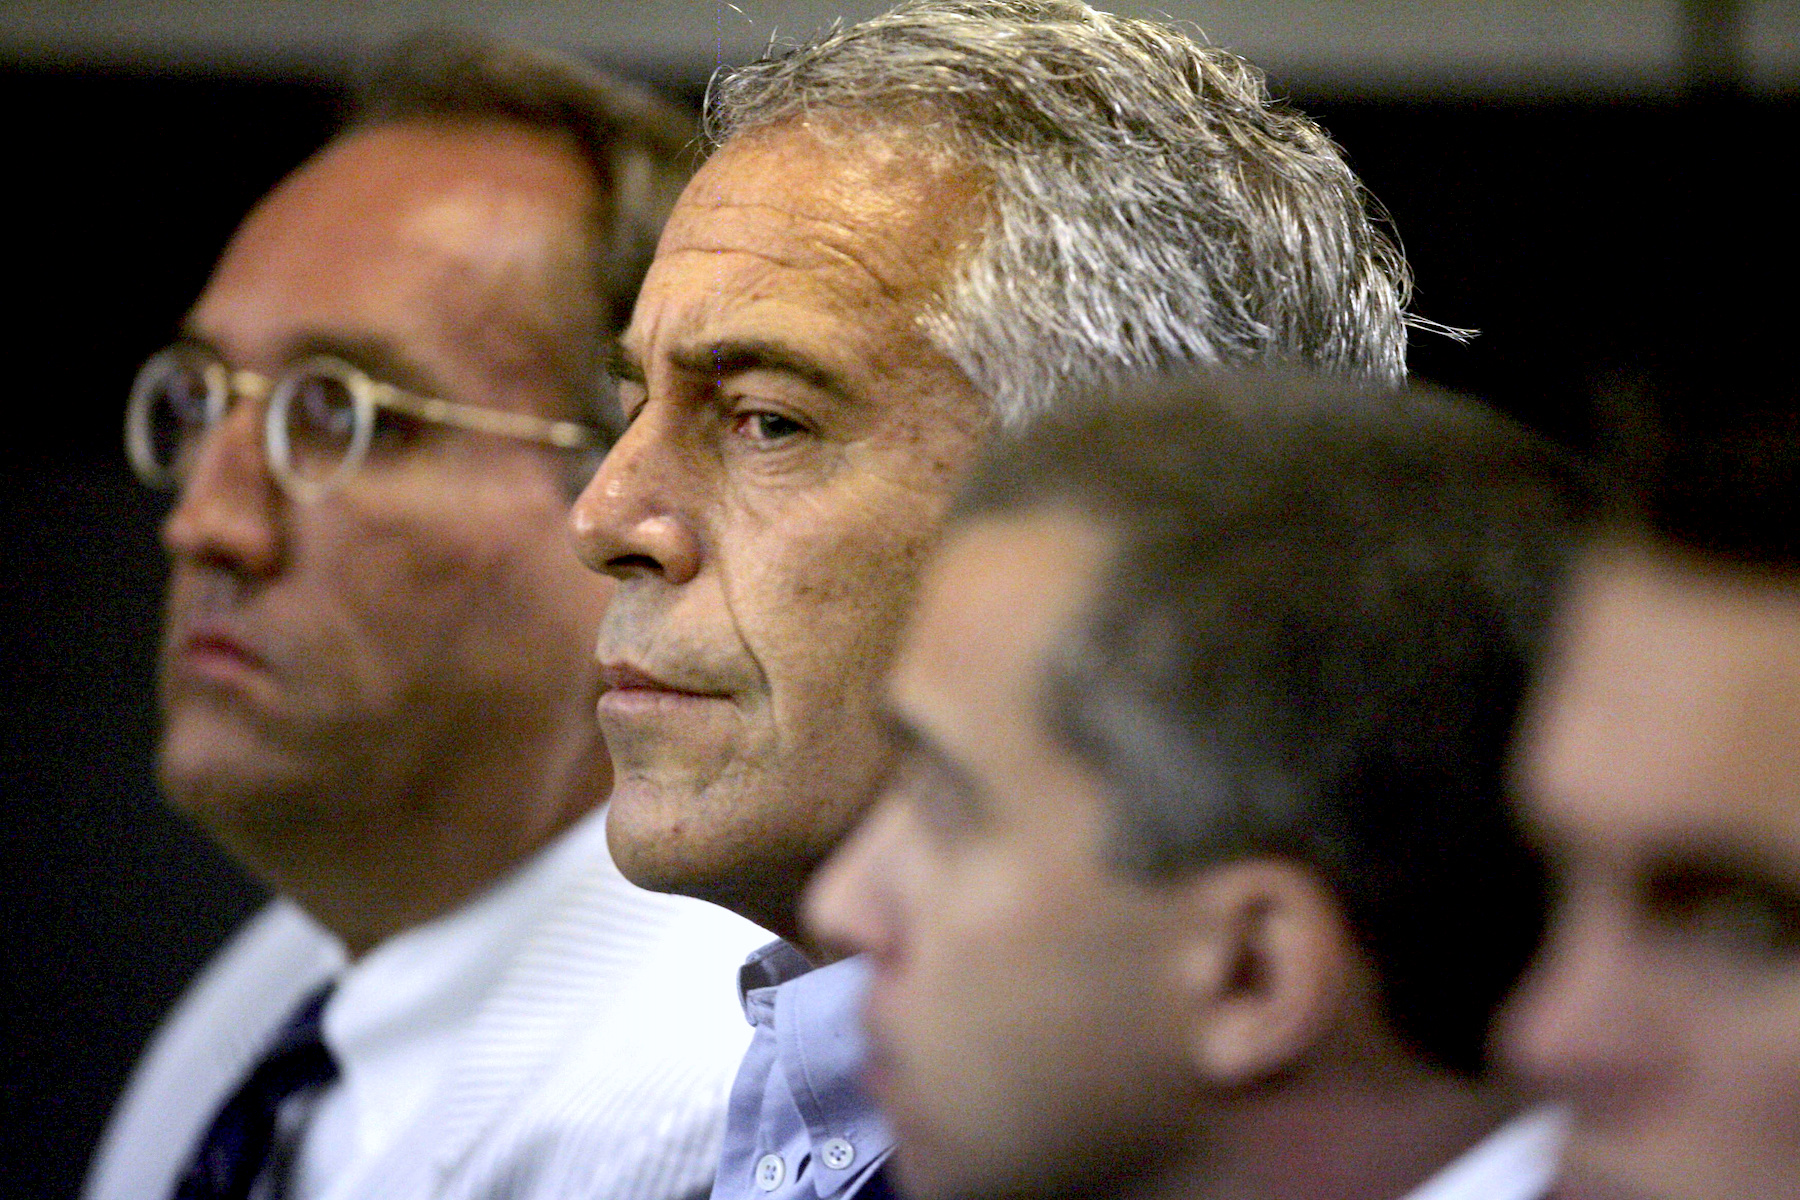 Mystery Man Tries to Get Judge to Block Release of Names in Case Linked to Jeffrey Epstein